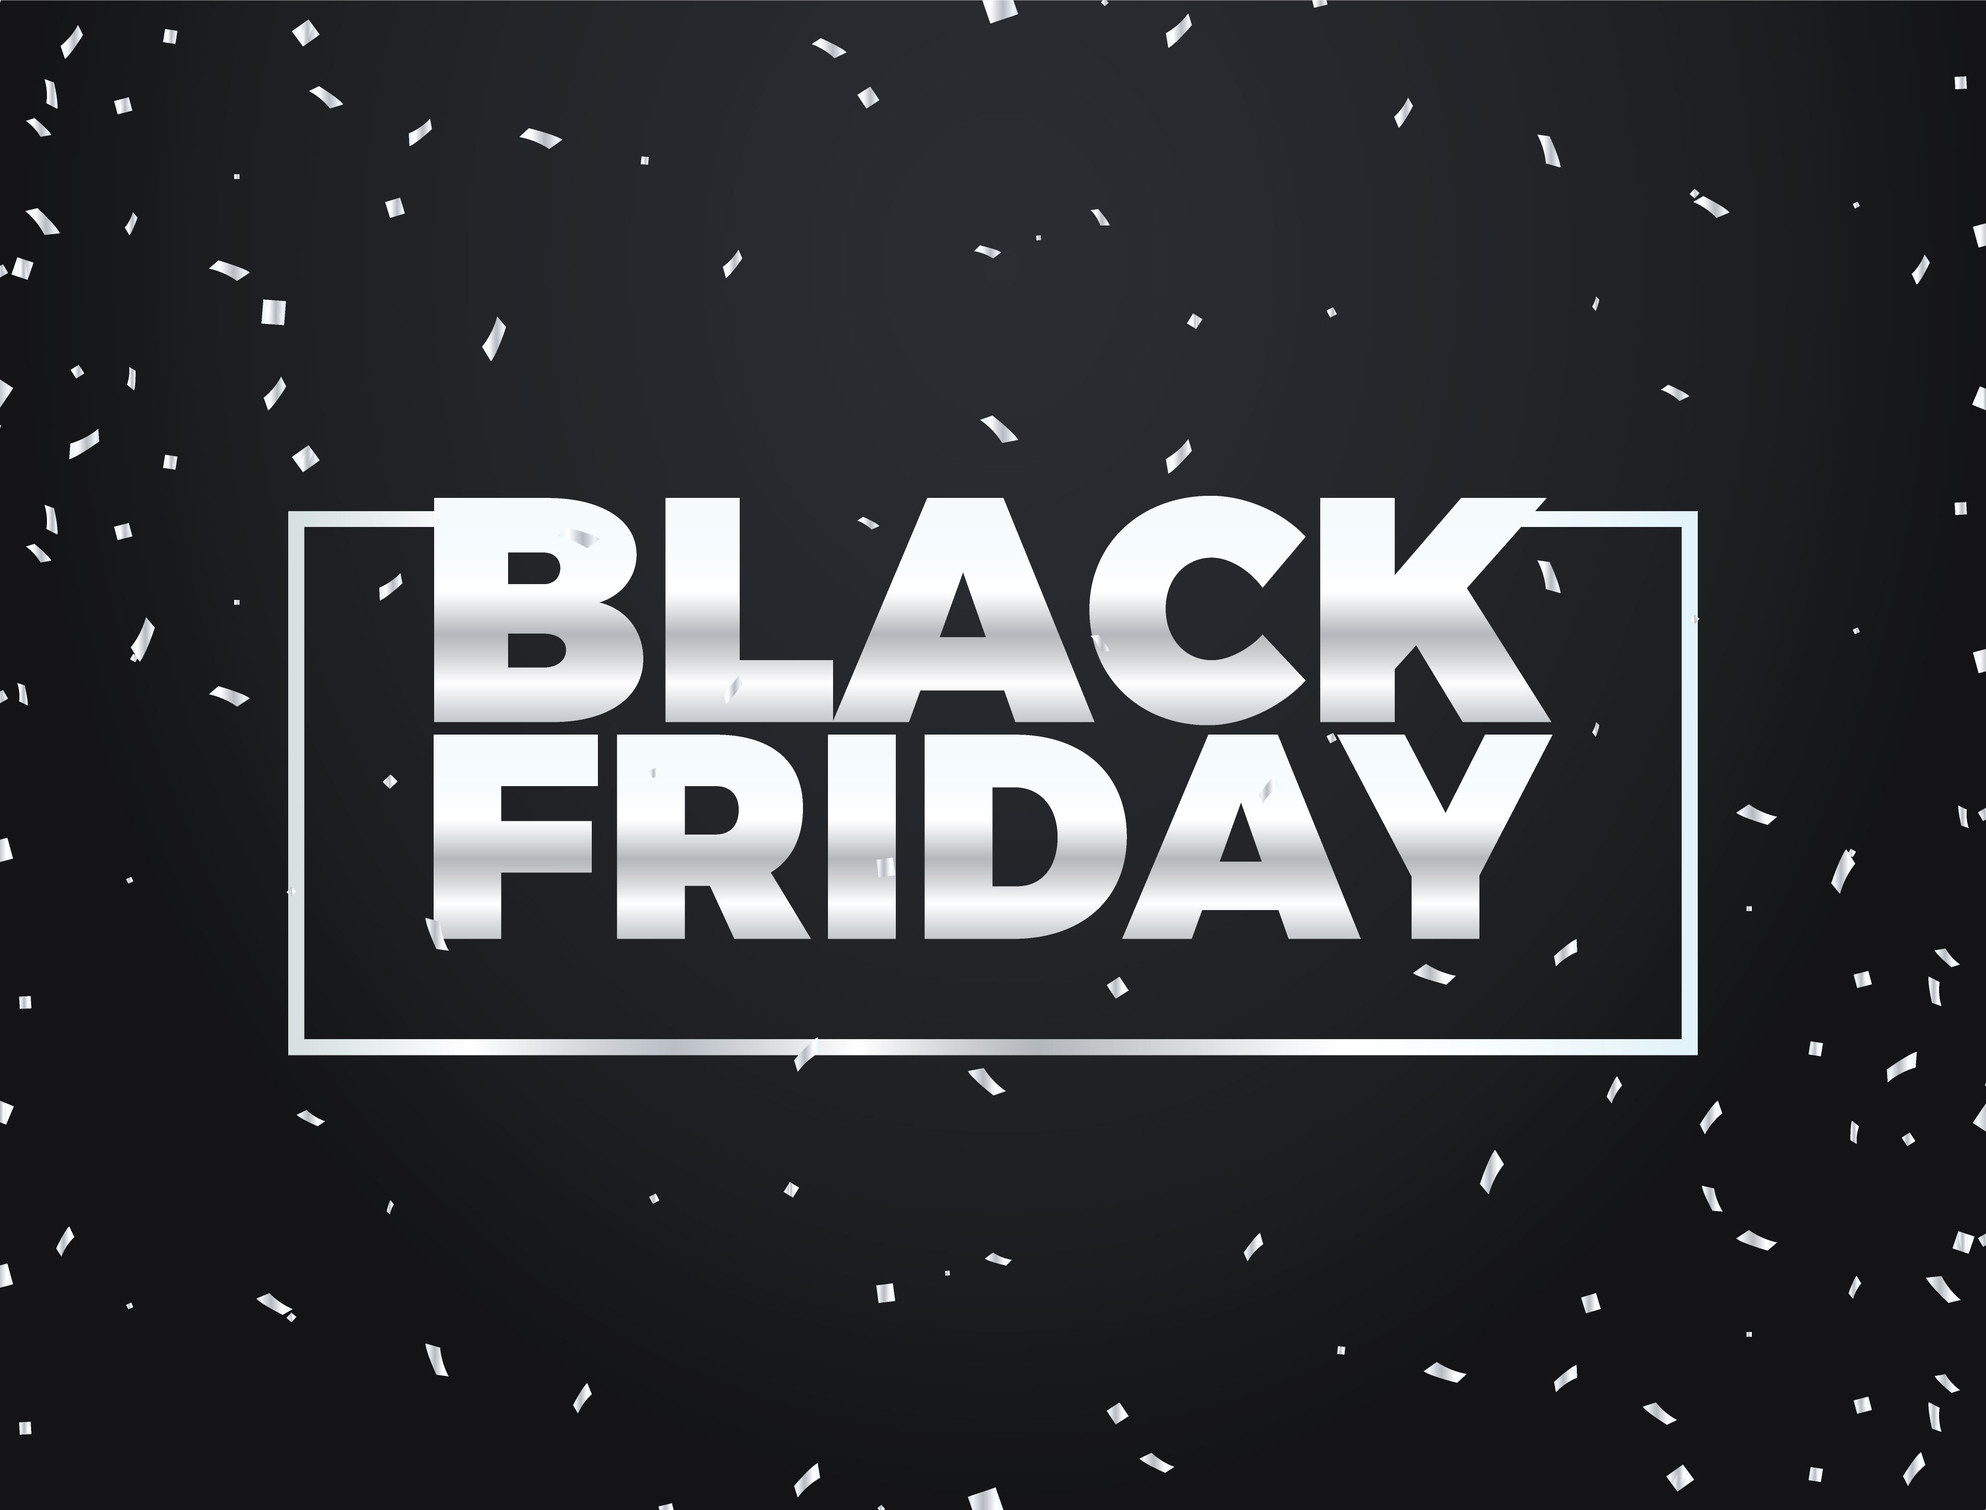 thanksgiving black friday store openings and ads wal mart macy 39 s best buy jc penney target. Black Bedroom Furniture Sets. Home Design Ideas